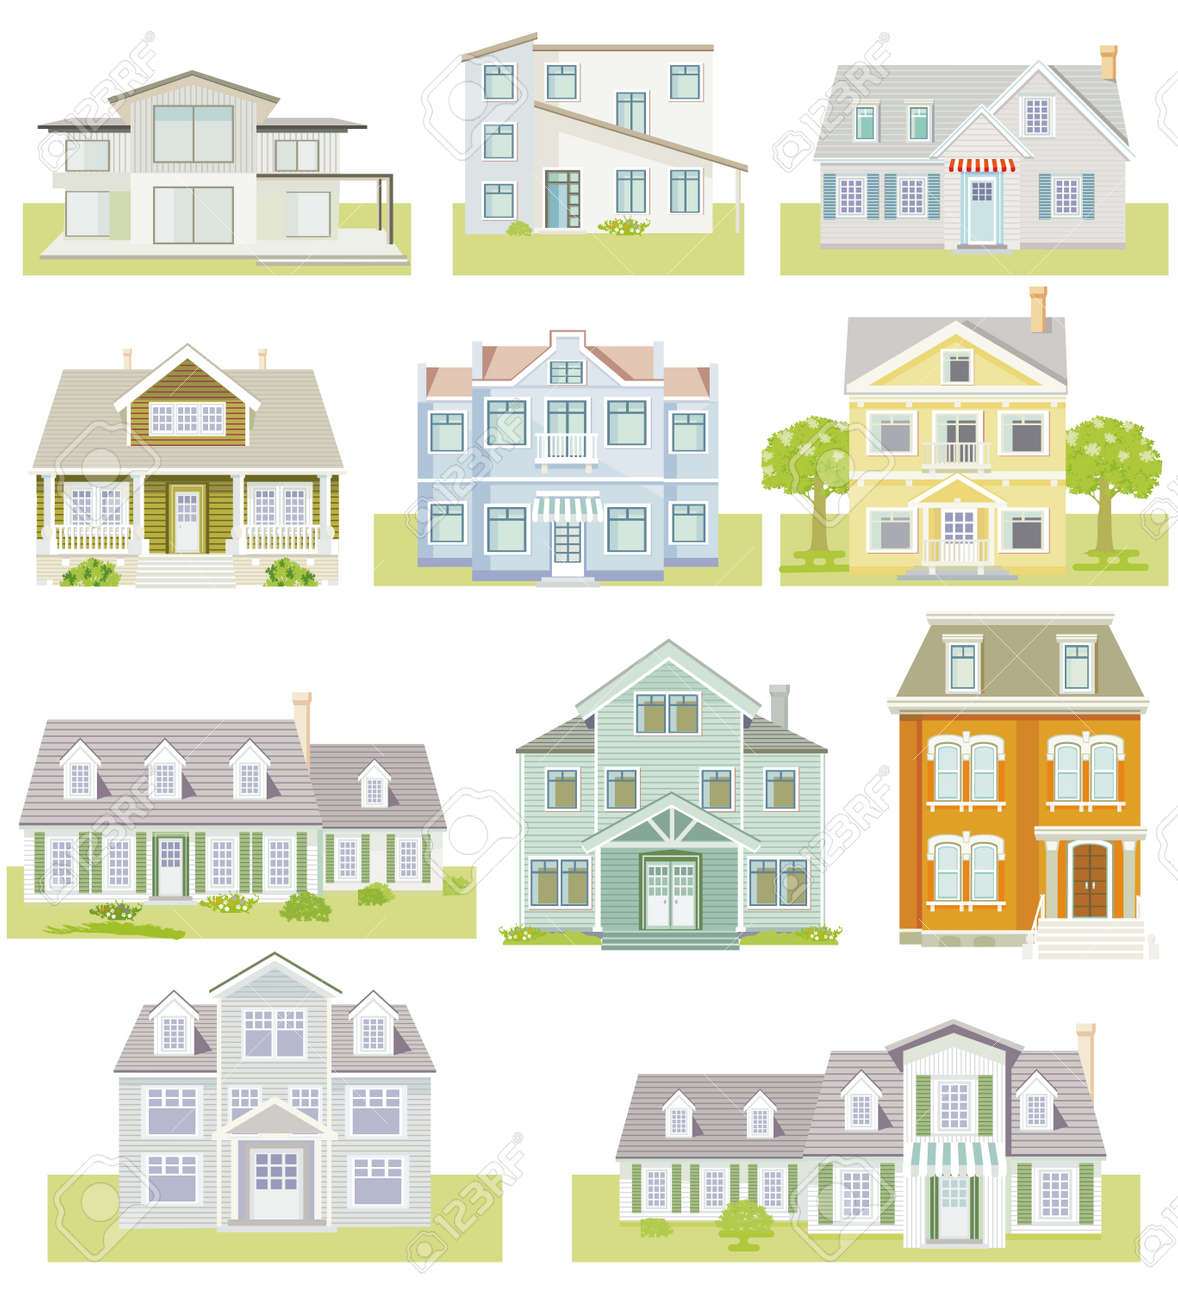 Set of houses and apartment houses, country houses, wooden houses, family houses, illustration - 165424112